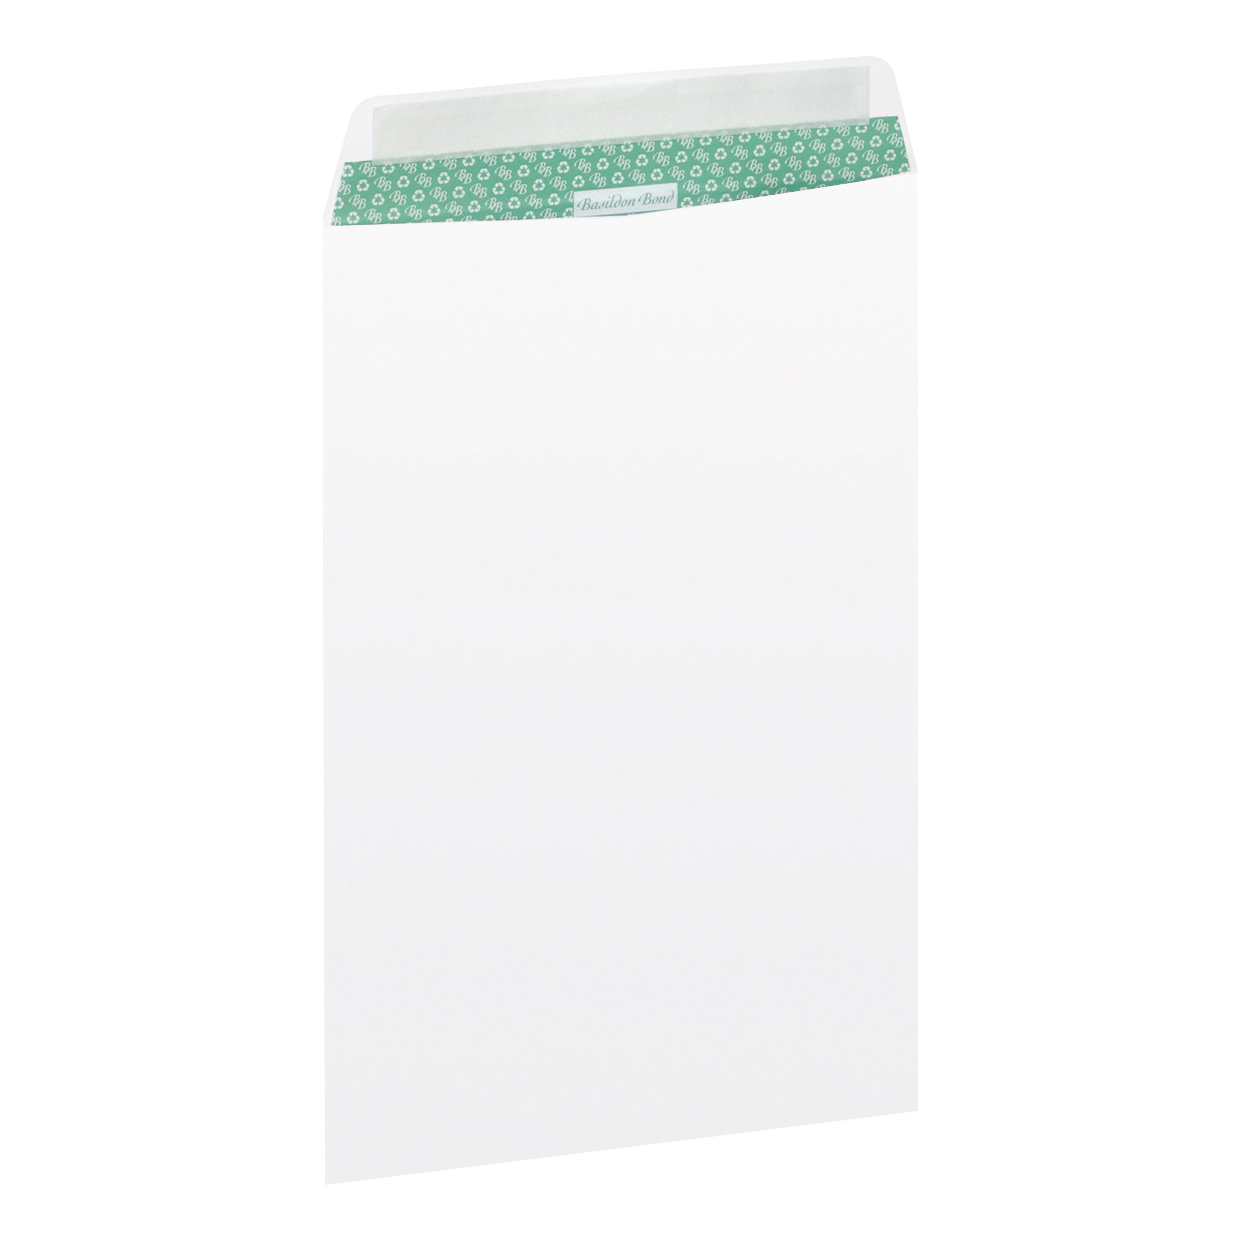 Standard envelopes Basildon Bond Envelopes FSC Recycled Pocket Peel & Seal 120gsm C4 324x229mm White Ref L80281 Pack 50